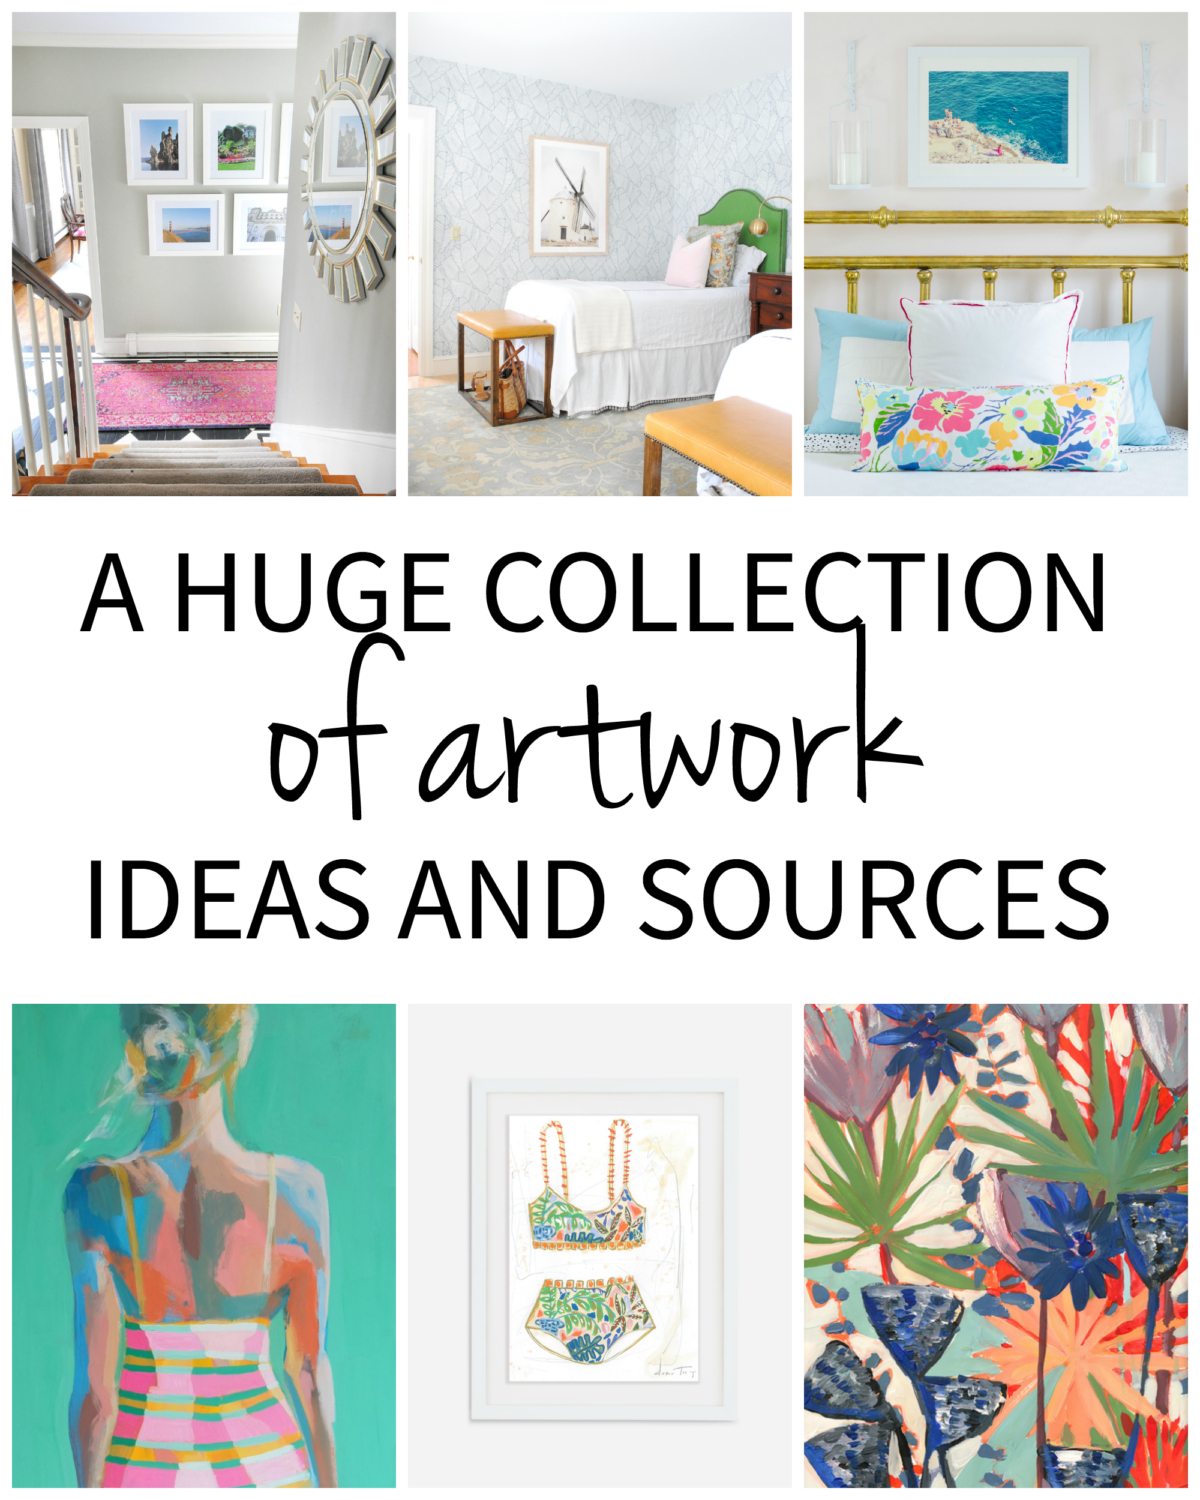 A huge collection of artwork sources with DIY ideas and ready to purchase pieces for every budget!